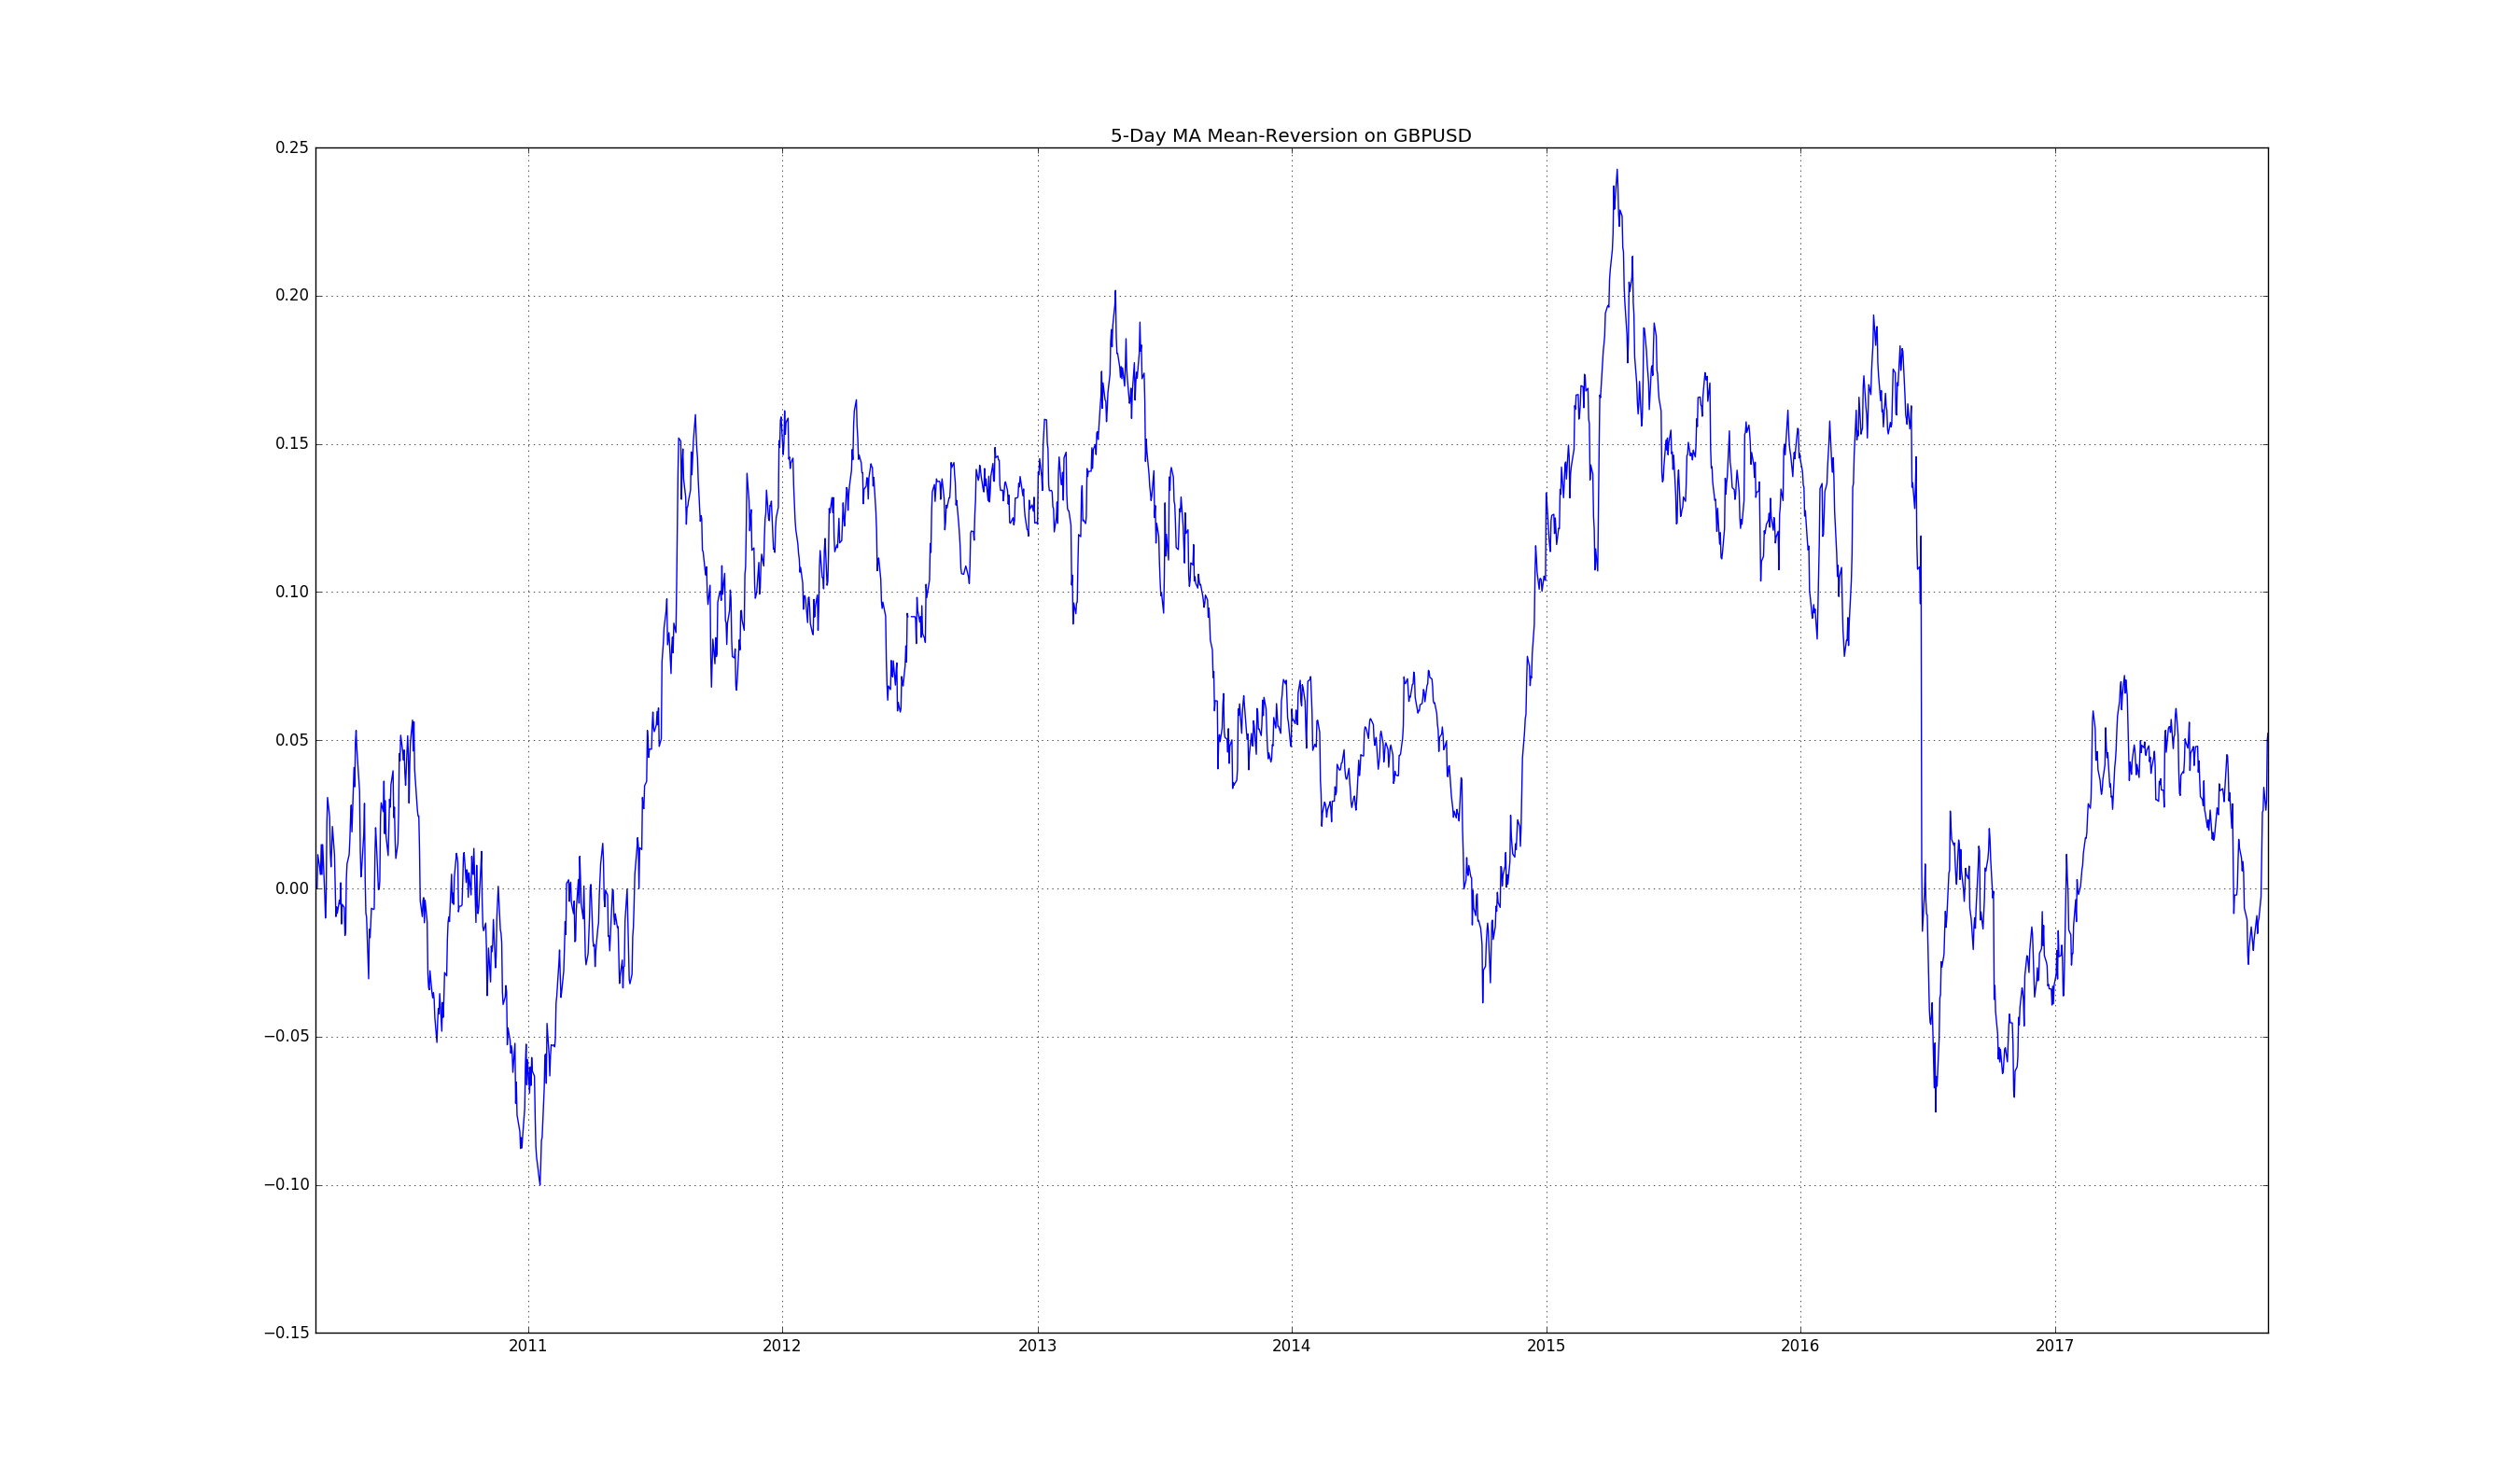 5MA Mean Reversion Trading Strategy on GBPUSD